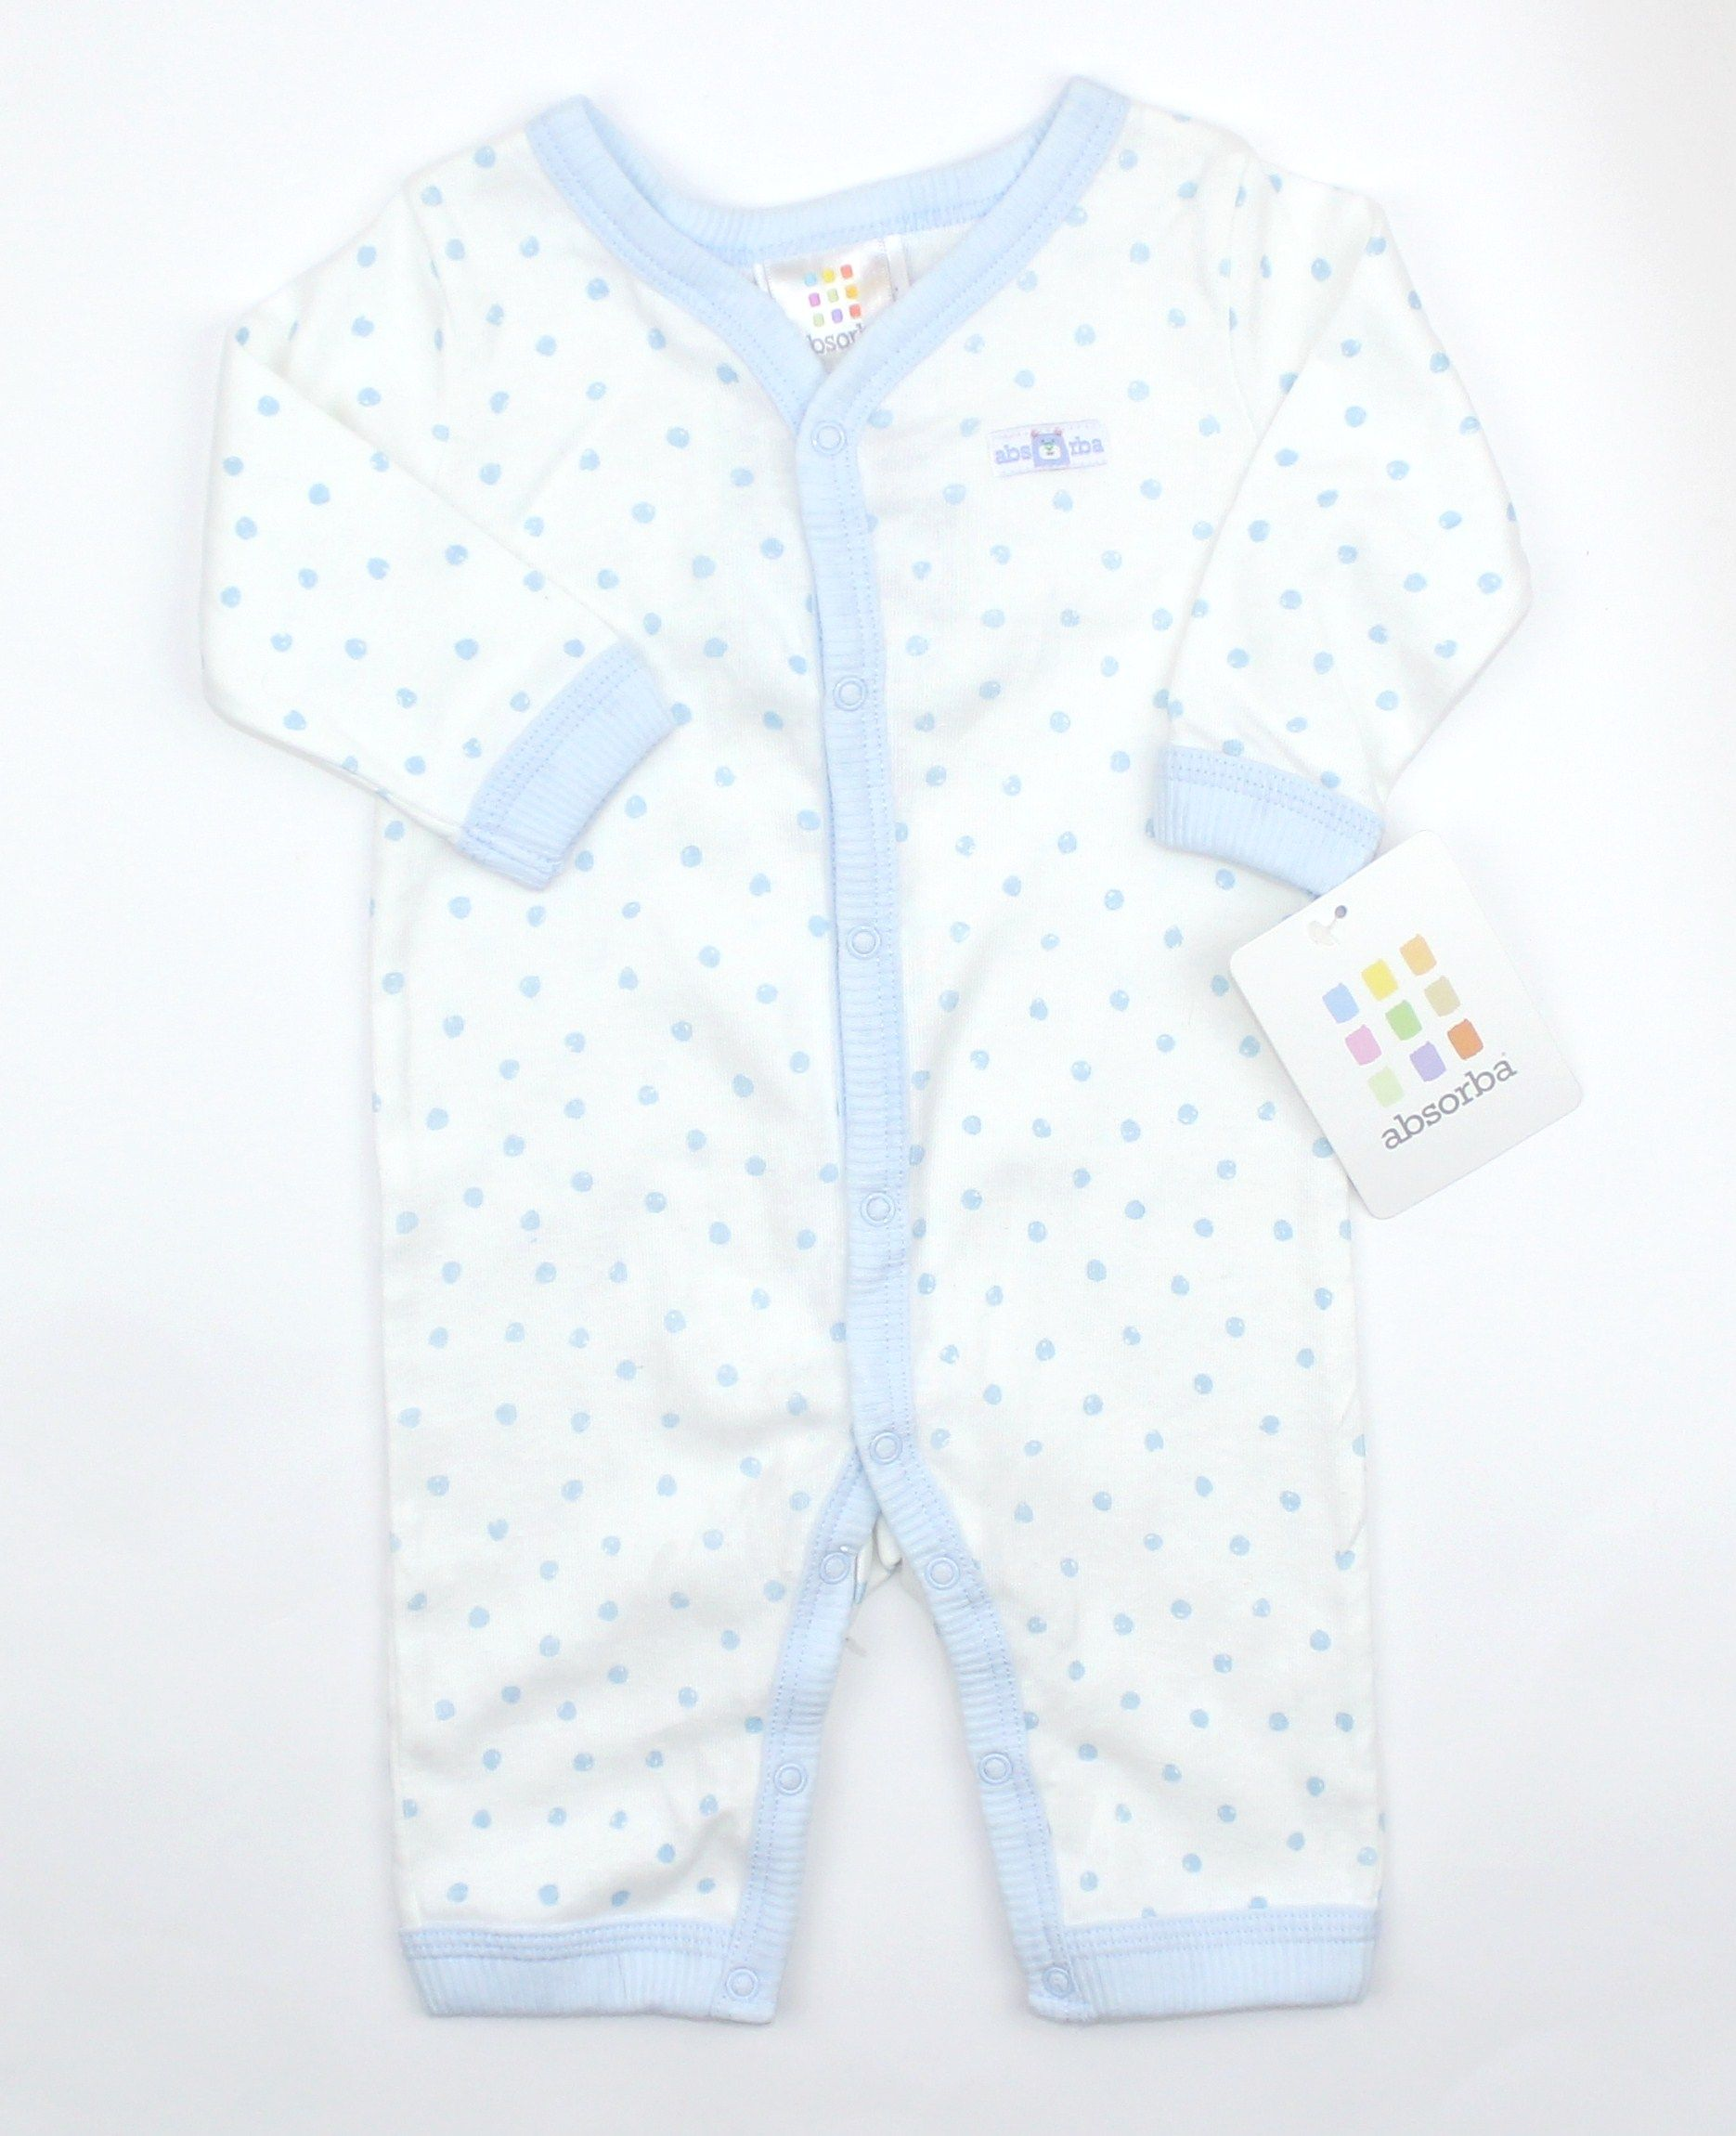 NWT Baby Boy Footless Sleeper by Absorba in Size 0 3 Months ly